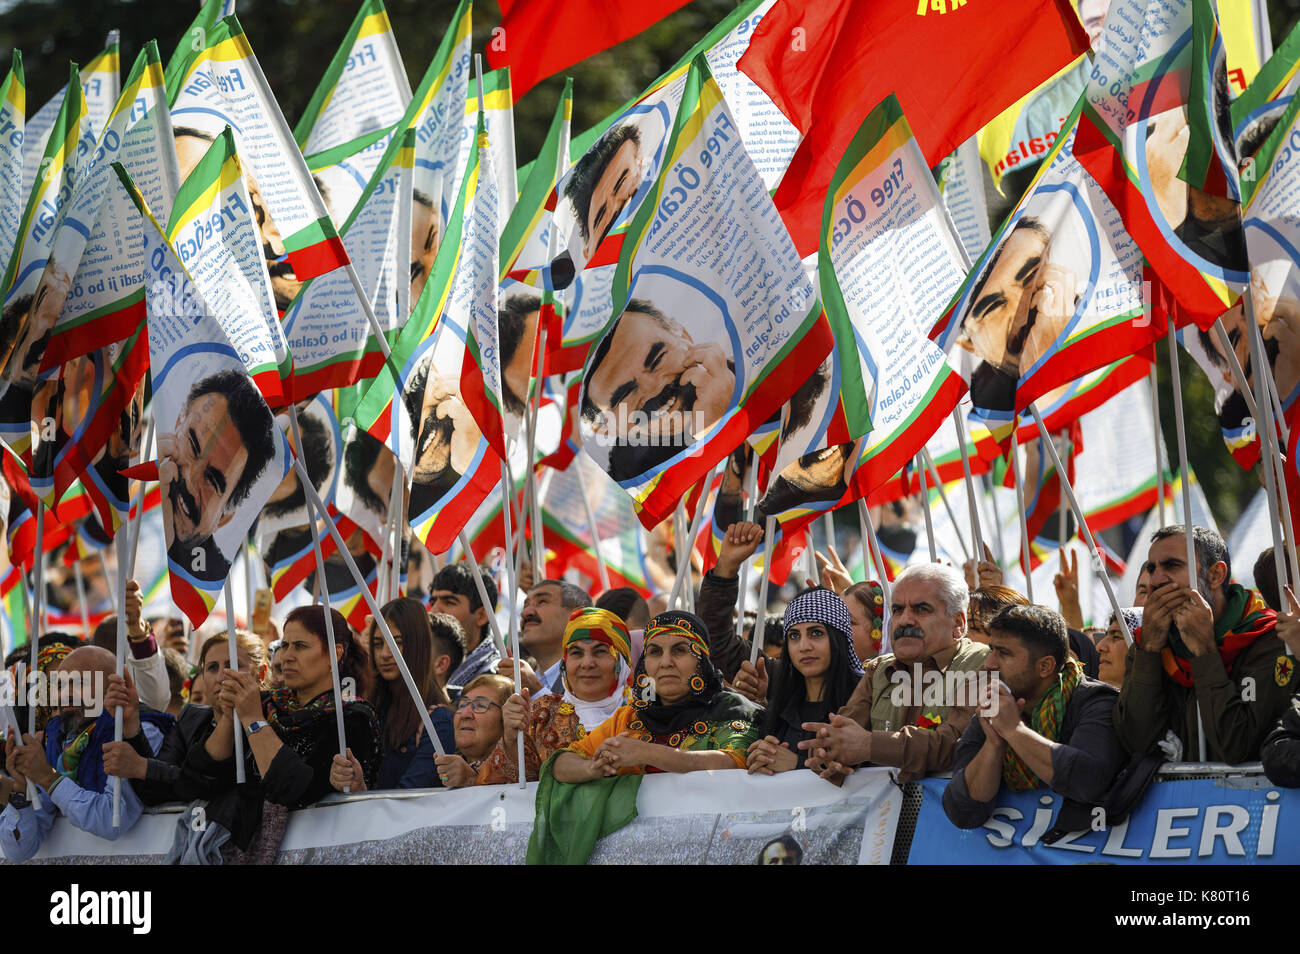 Cologne, Germany. 16th Sep, 2017. Participants of the international Kurdish culture festival wave flags showing Öcalan, the leader of the Kurdistan Workers' Party (PKK), at the Deutzer shipyard in Cologne, Germany, 16 September 2017. Turkey ordered the German ambassador in Ankara to the Foreign Ministry protesting against the Kurdish festival in Cologne. Photo: Christoph Hardt/Geisler-Fotopres/Geisler-Fotopress/dpa/dpa/Alamy Live News - Stock Image